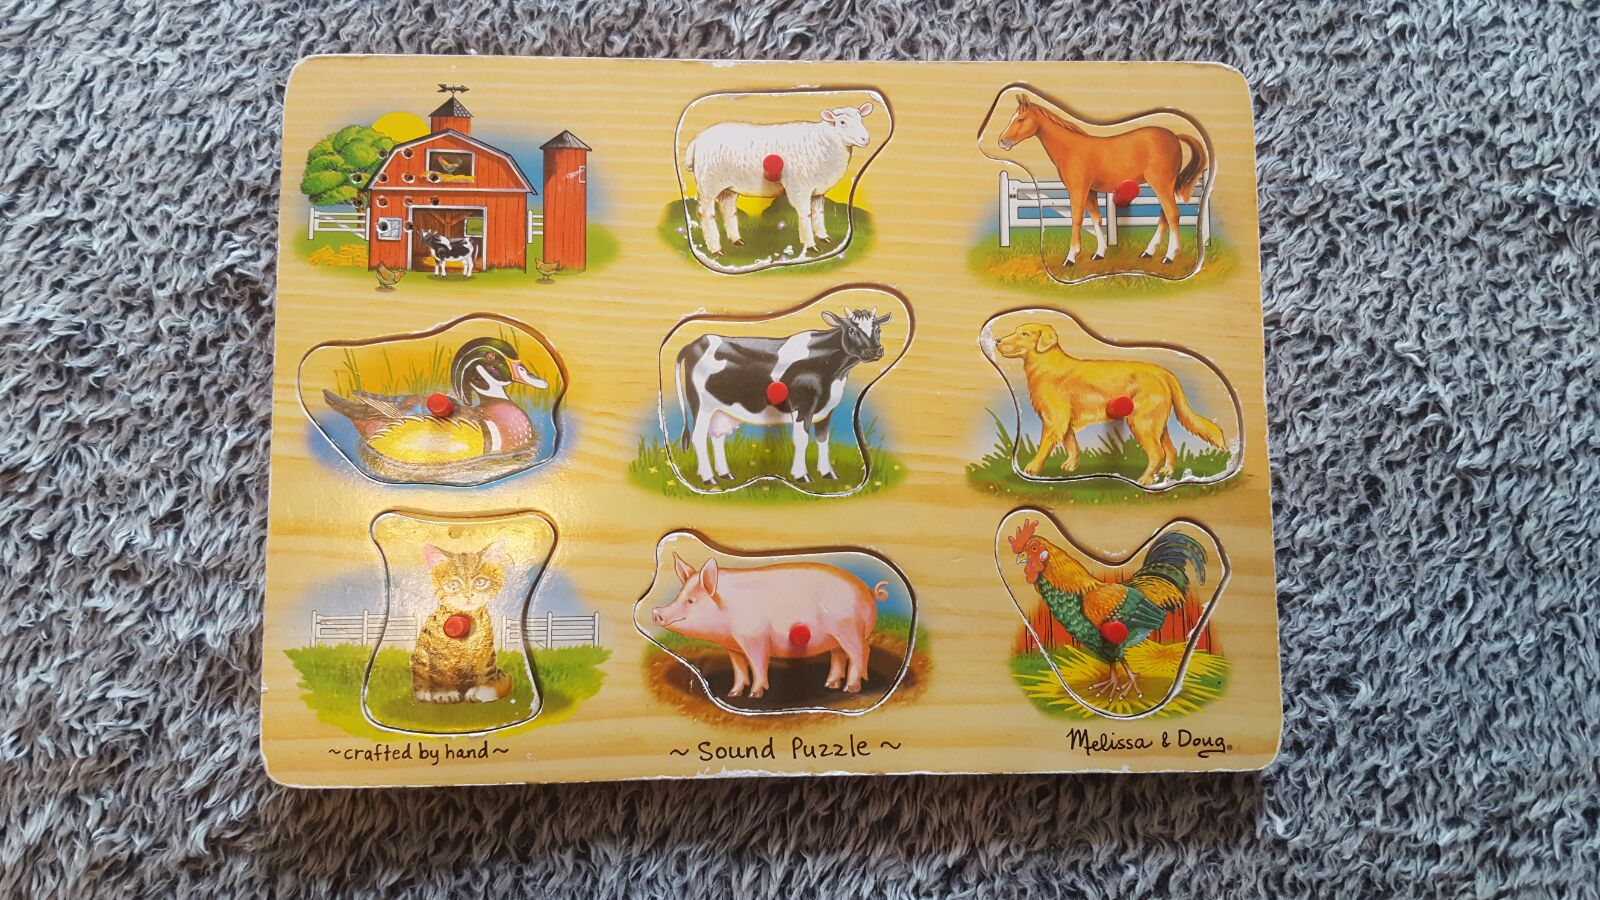 Melissa and Doug Wooden Farm Sound Puzzl